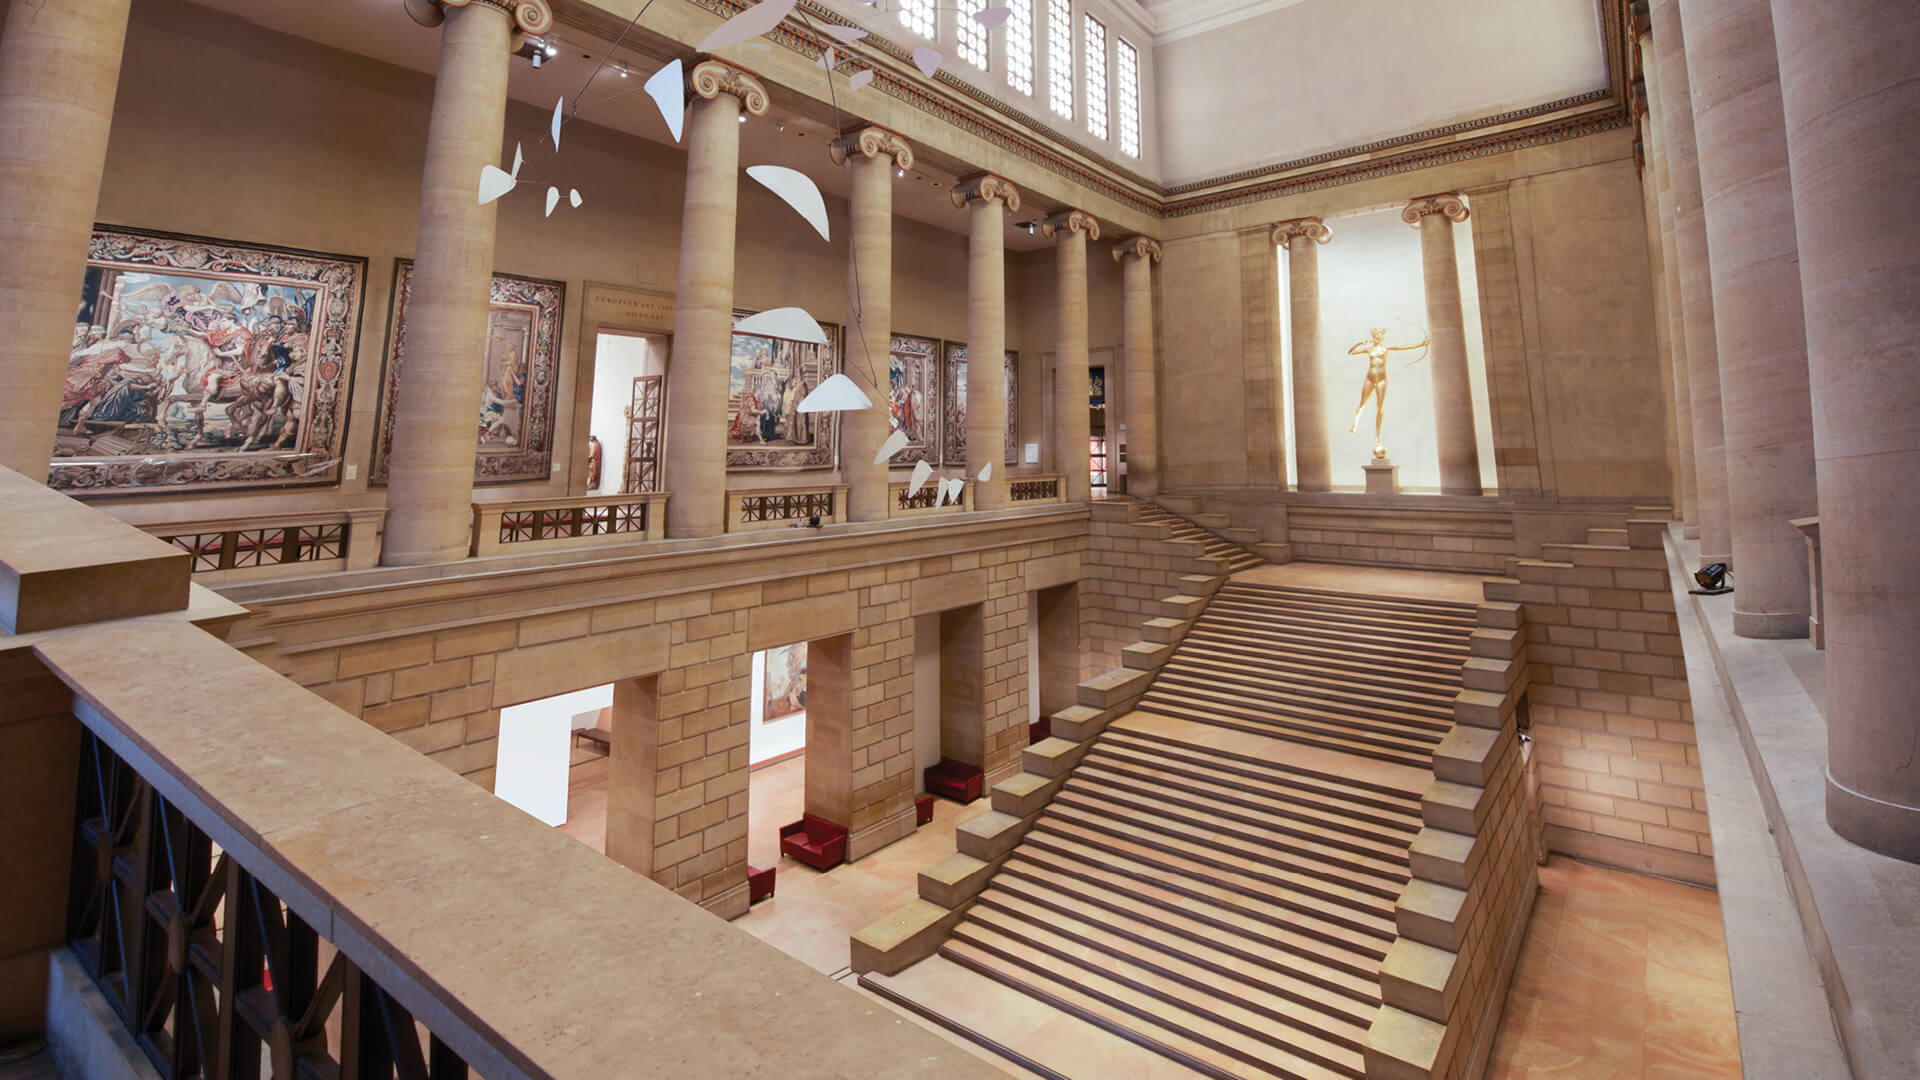 The Great Stair Hall | The Philadelphia Museum of Art | Frank Gehry | STIRworld